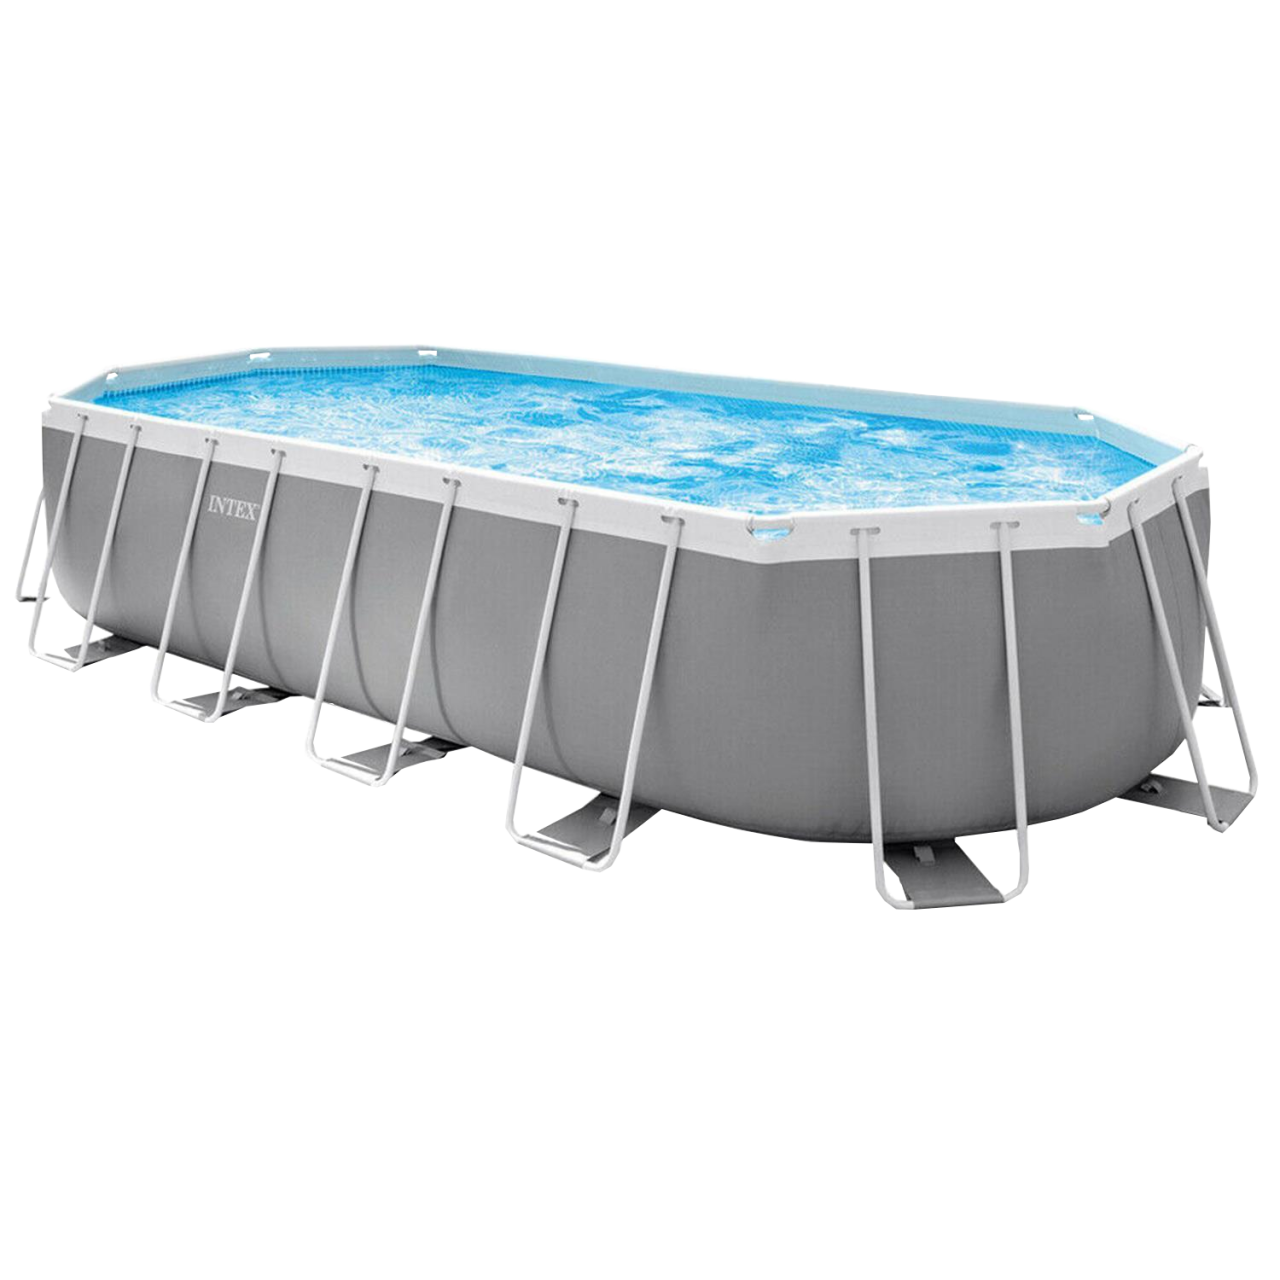 Intex Prism Frame Oval Pool Swimming Pool 610x305x122 cm Schwimmbad Filterpumpe